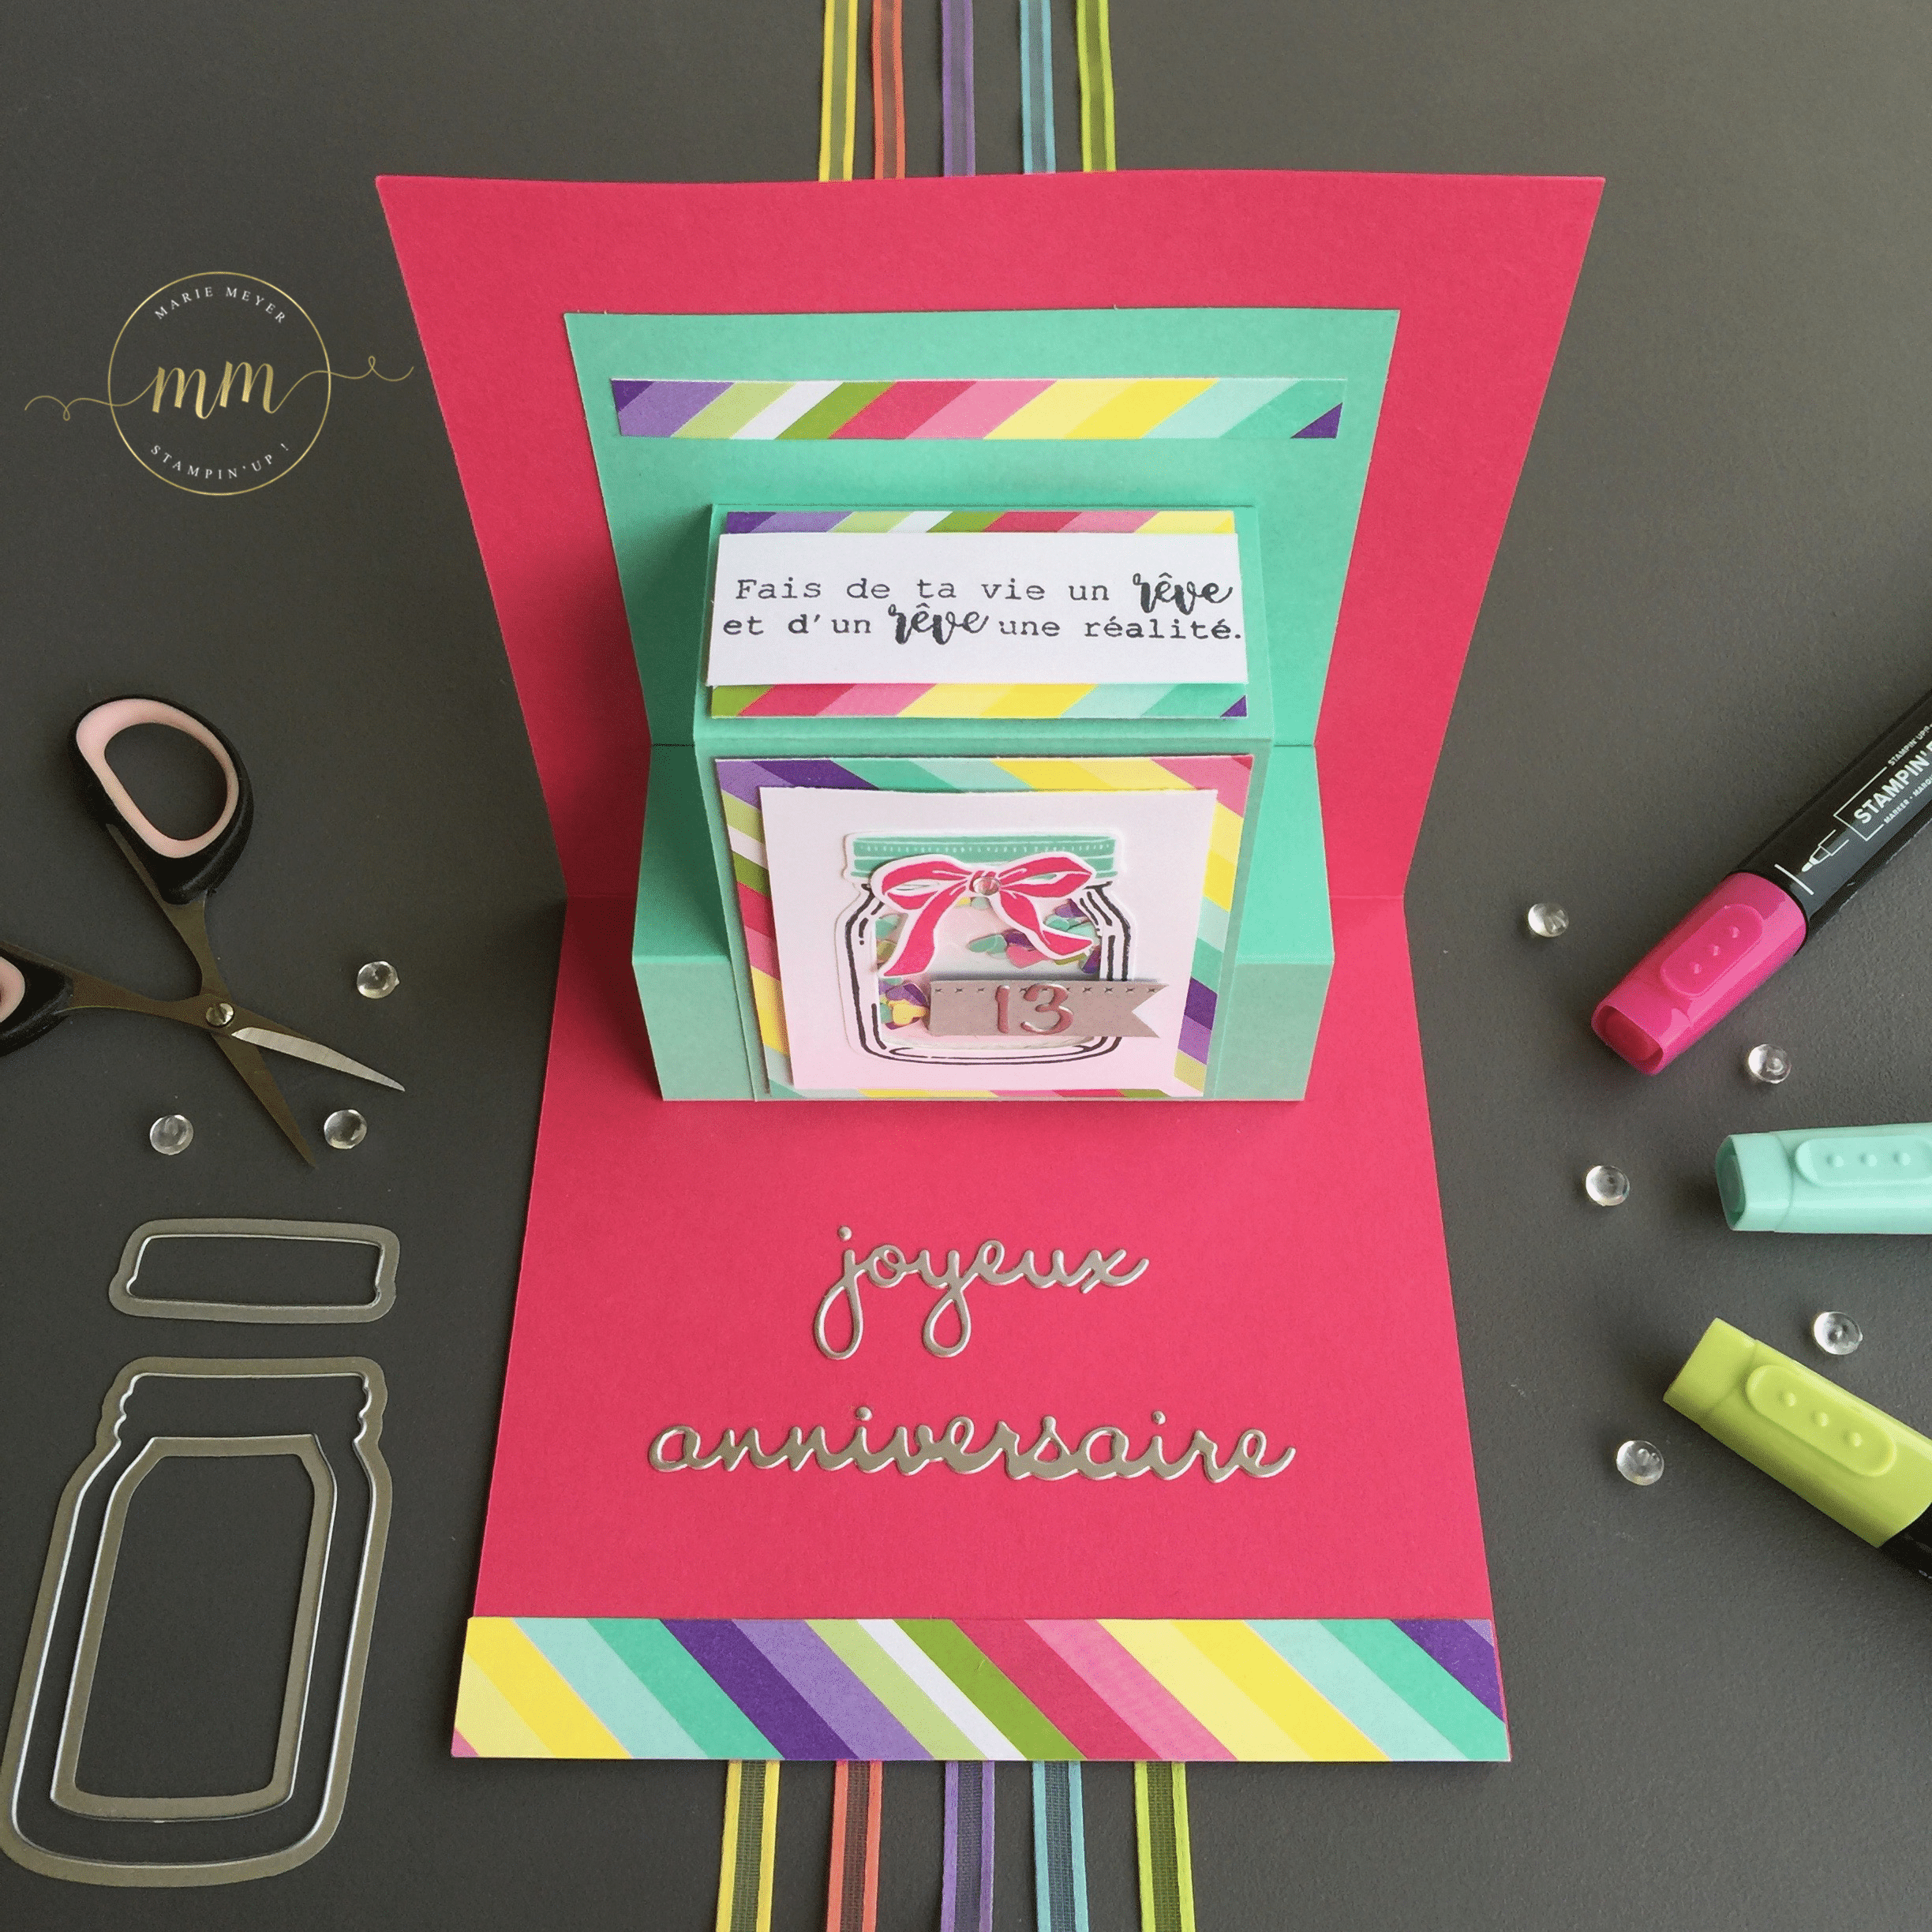 Ateliers Scrapbooking Fr Marie Meyer Demonstratrice Stampin Up France Carte D Anniversaire 13 Ans Alice Quel Delice